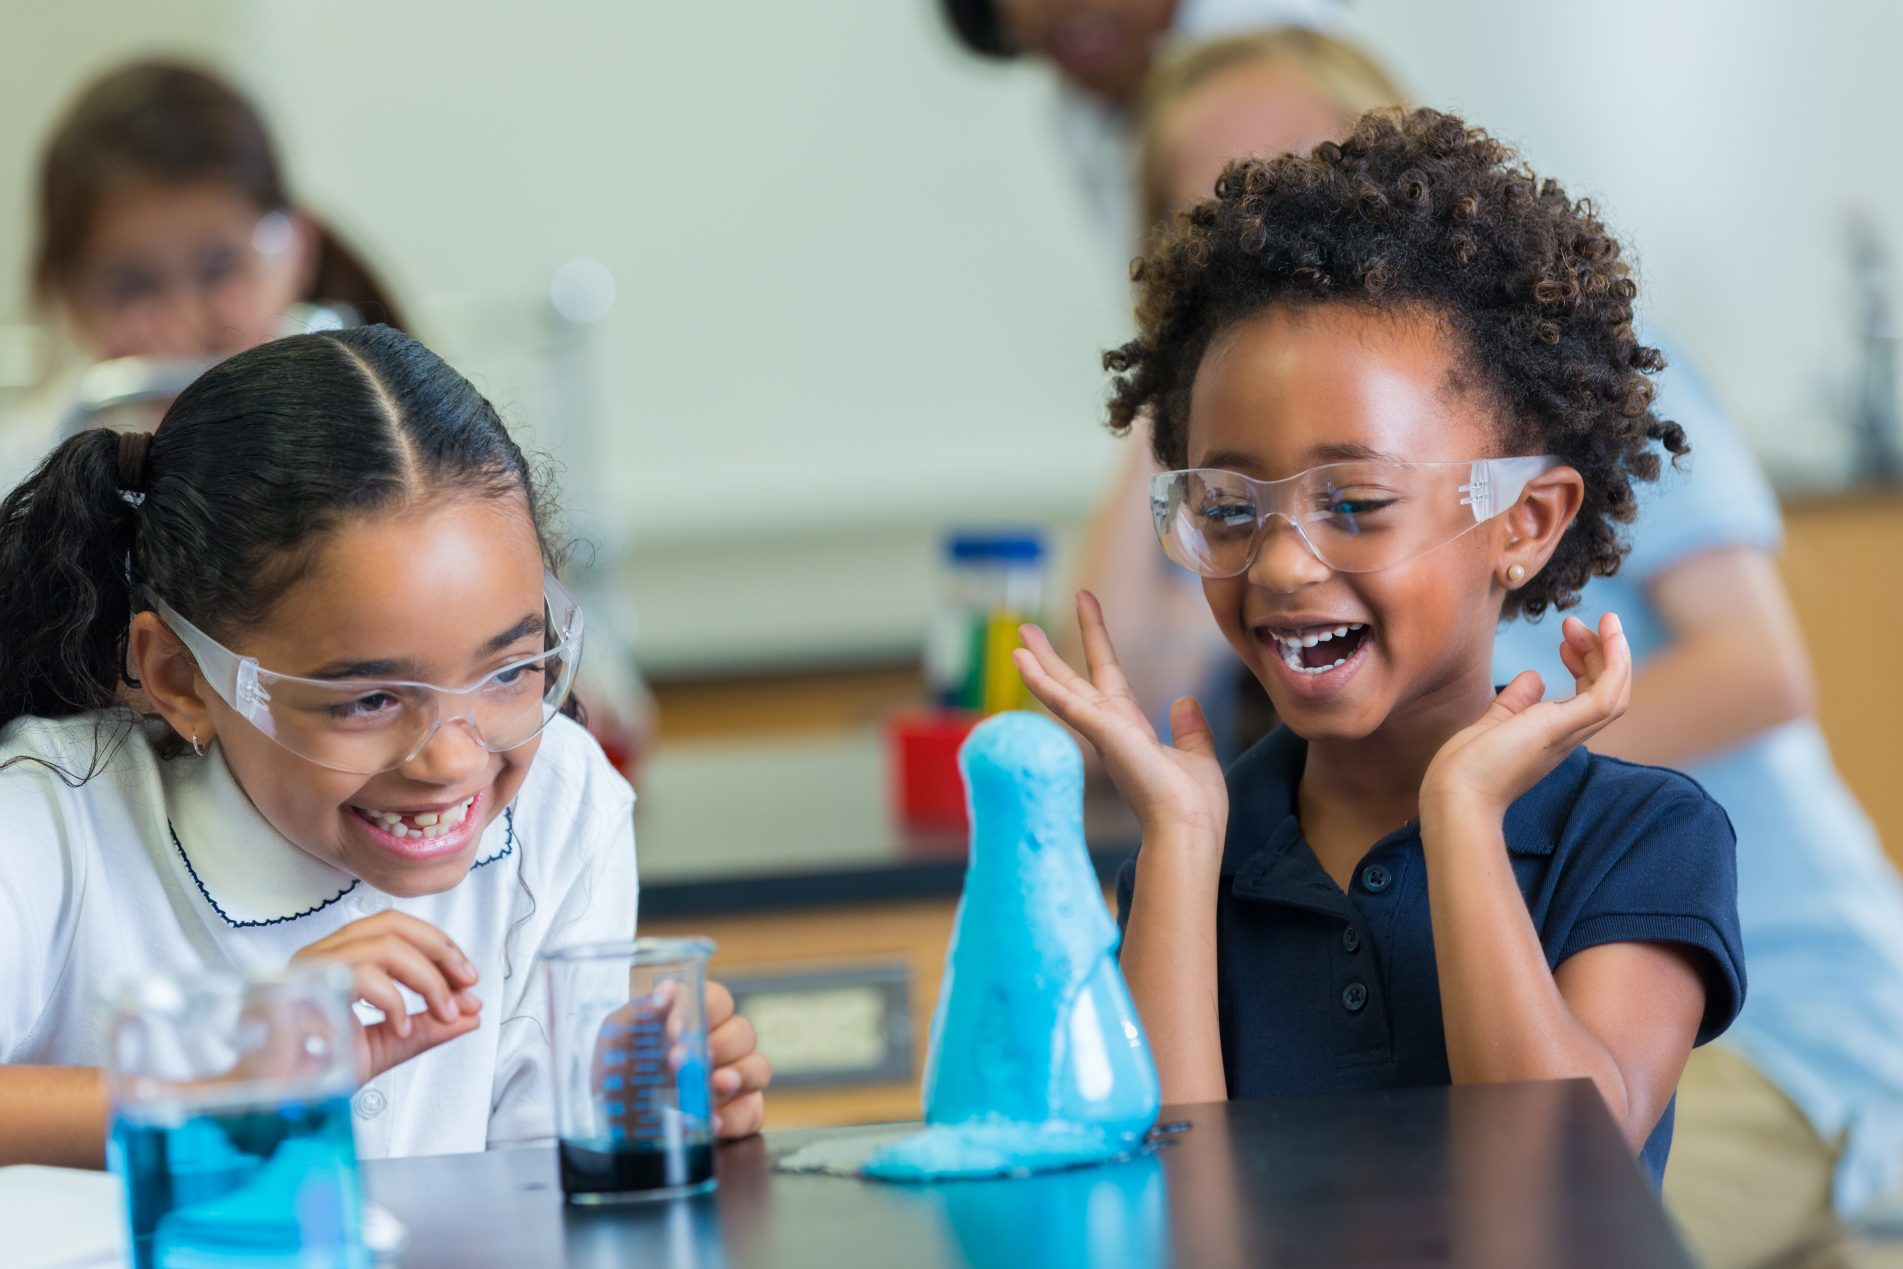 Cute elementary STEM schoolgirls giggle as foam overflows beaker during science experiment. They are wearing protective glasses and school uniforms.